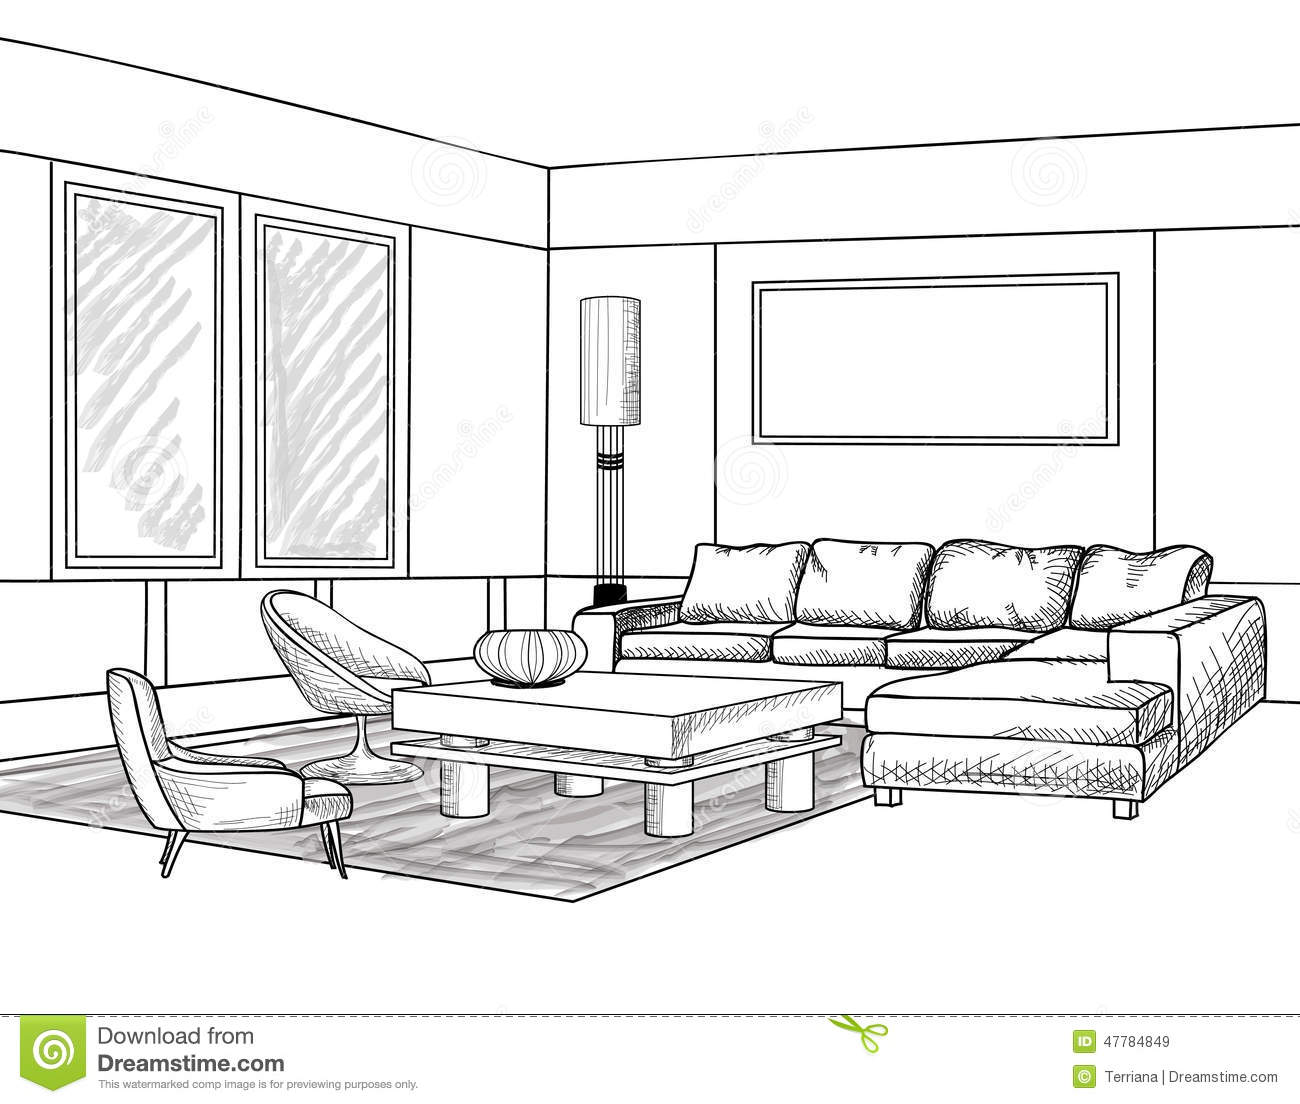 Interior outline sketch furniture blueprint stock for Room design blueprint